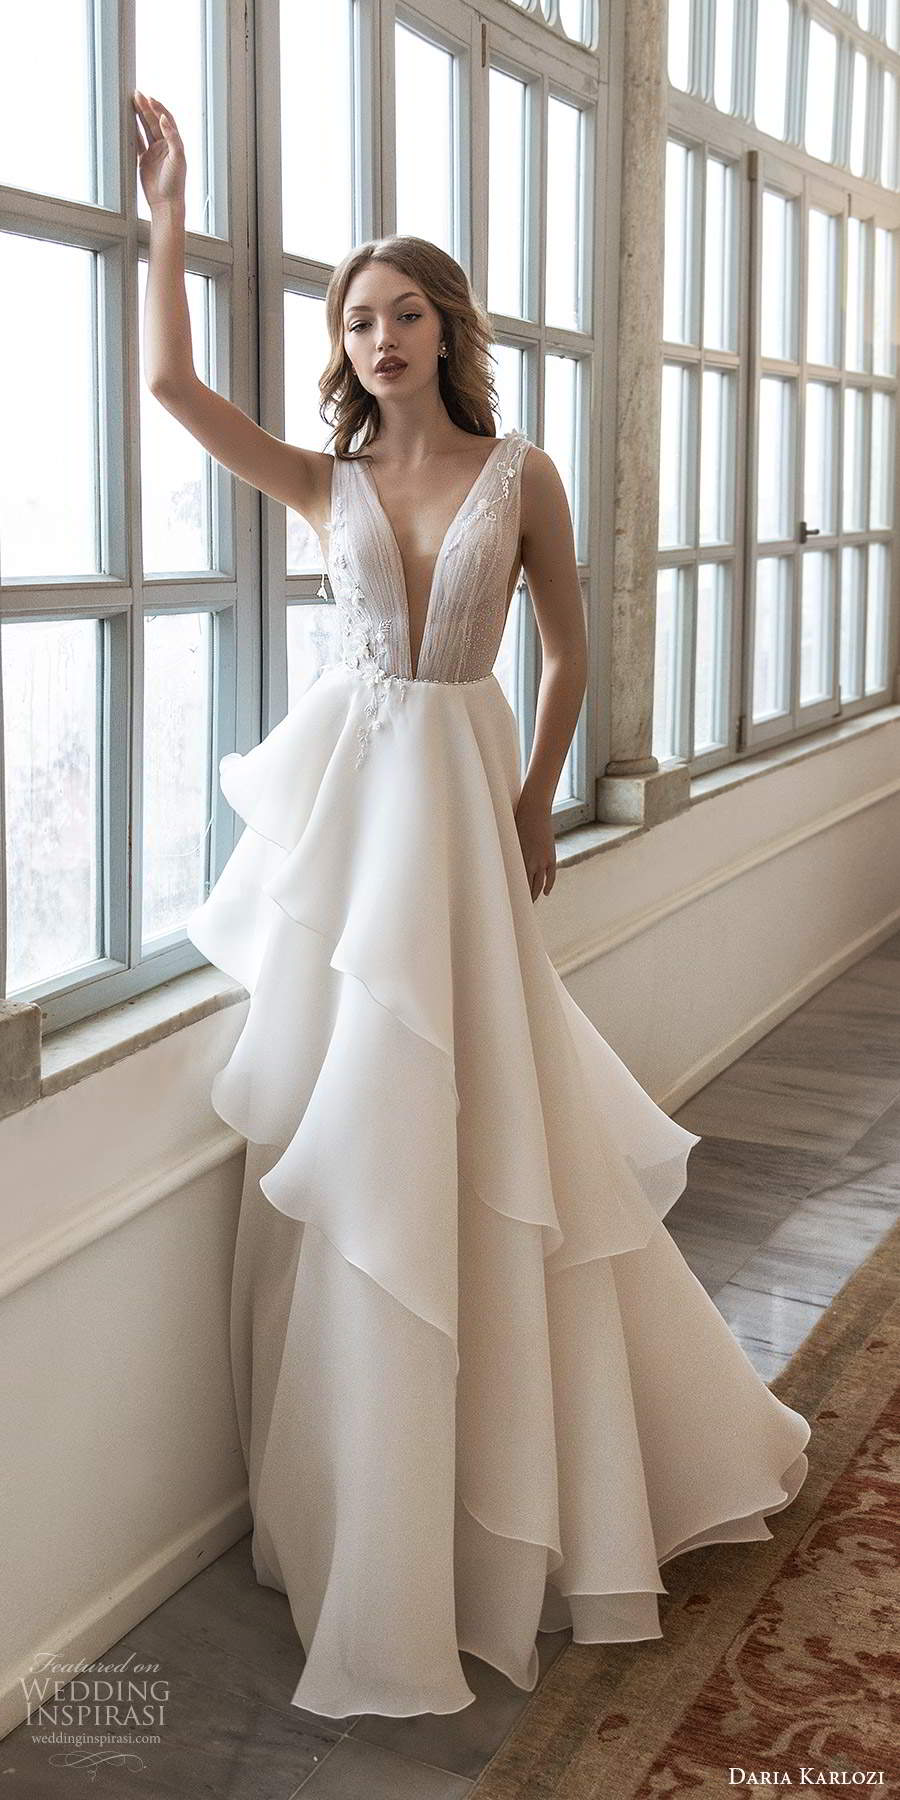 daria karlozi 2021 bridal sleeveless thick straps plunging v neckline ruched bodice a line wedding dress tiered skirt chapel trian (11) mv